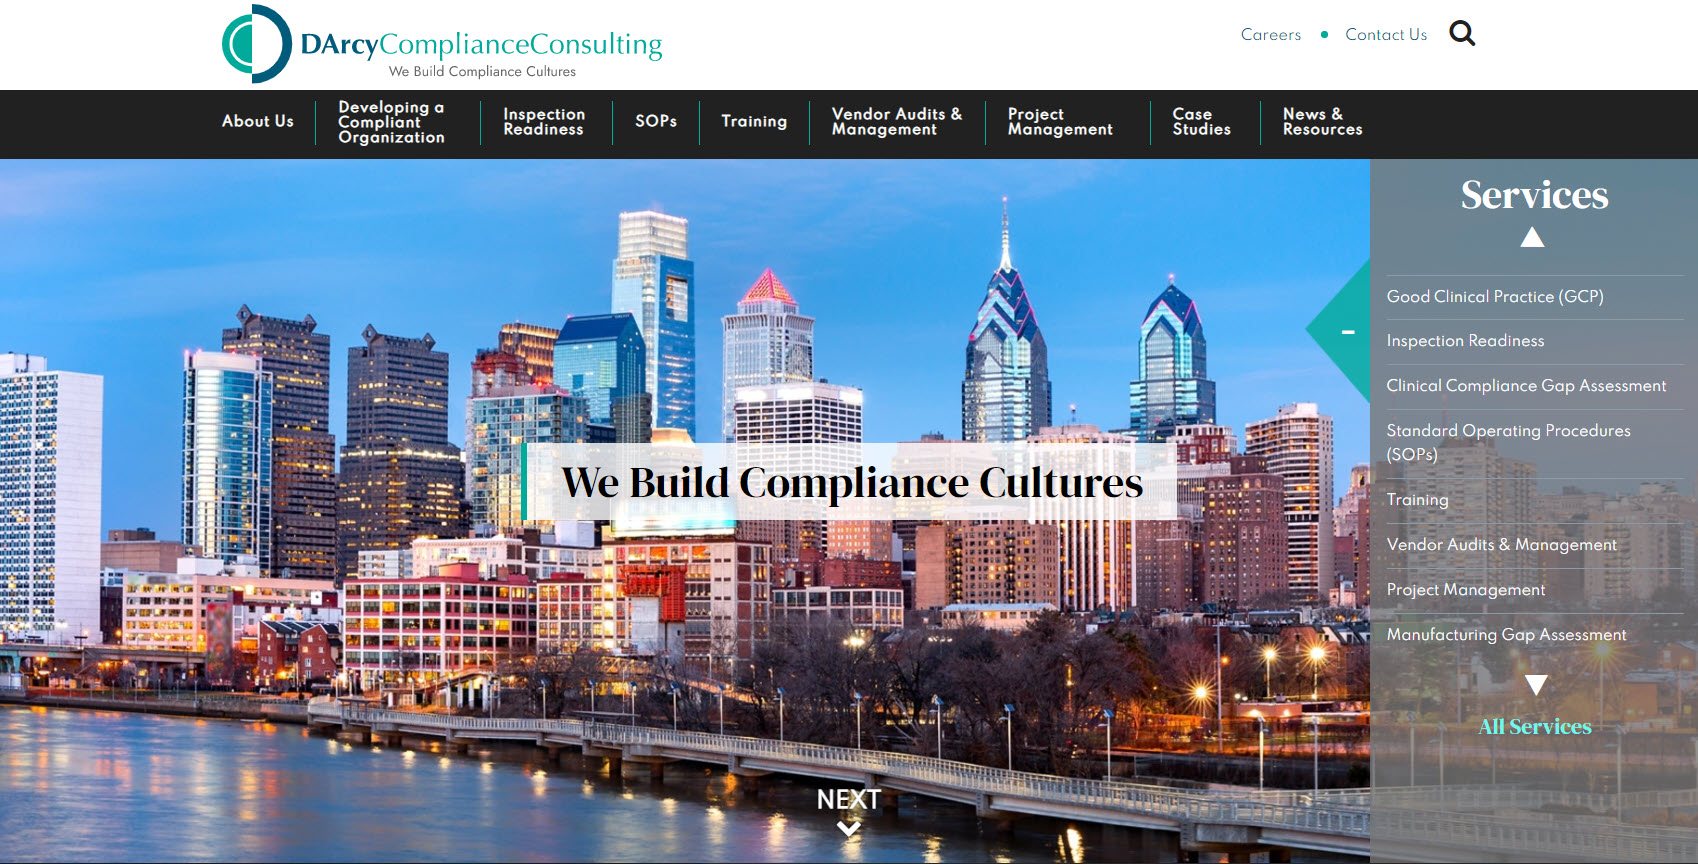 DArcy Compliance Consulting